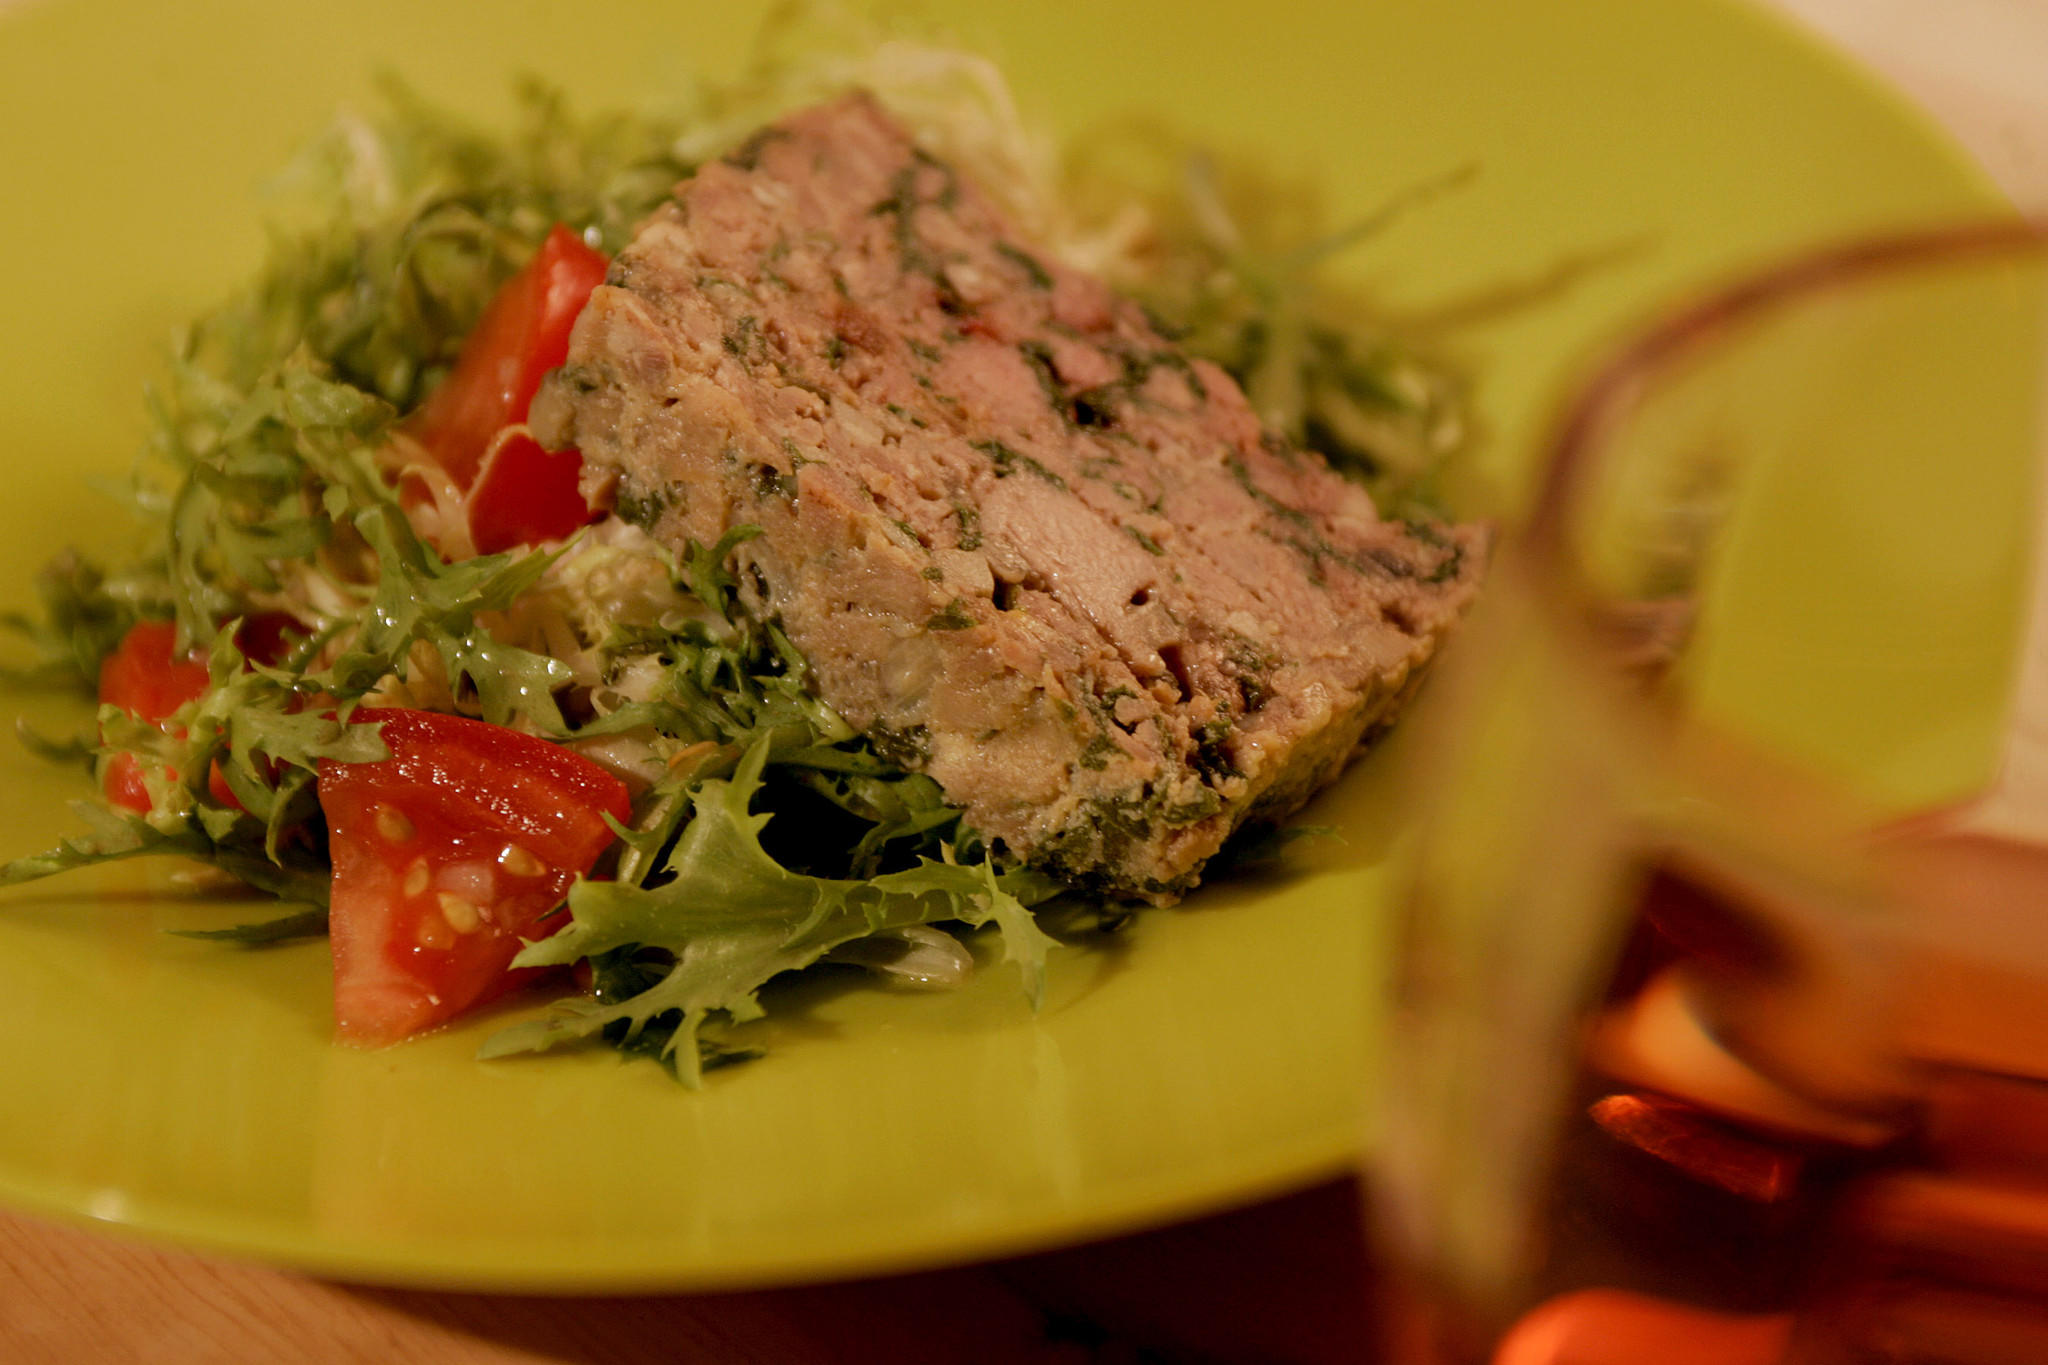 Tomato and frisee salad